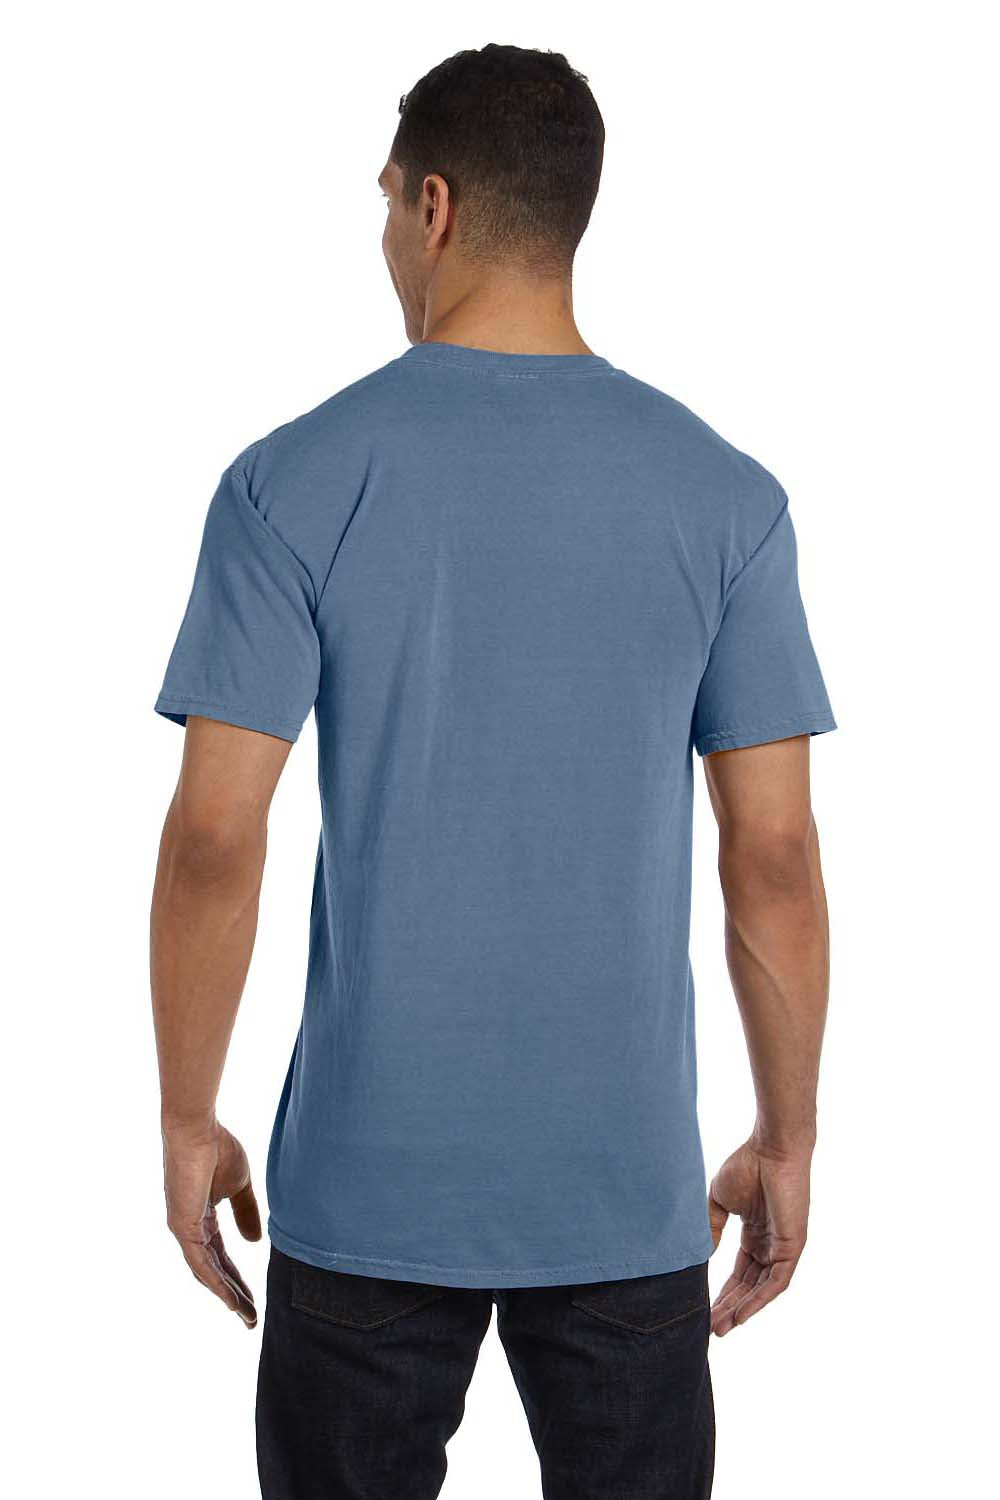 Comfort Colors 6030CC Mens Short Sleeve Crewneck T-Shirt w/ Pocket Blue Jean Back